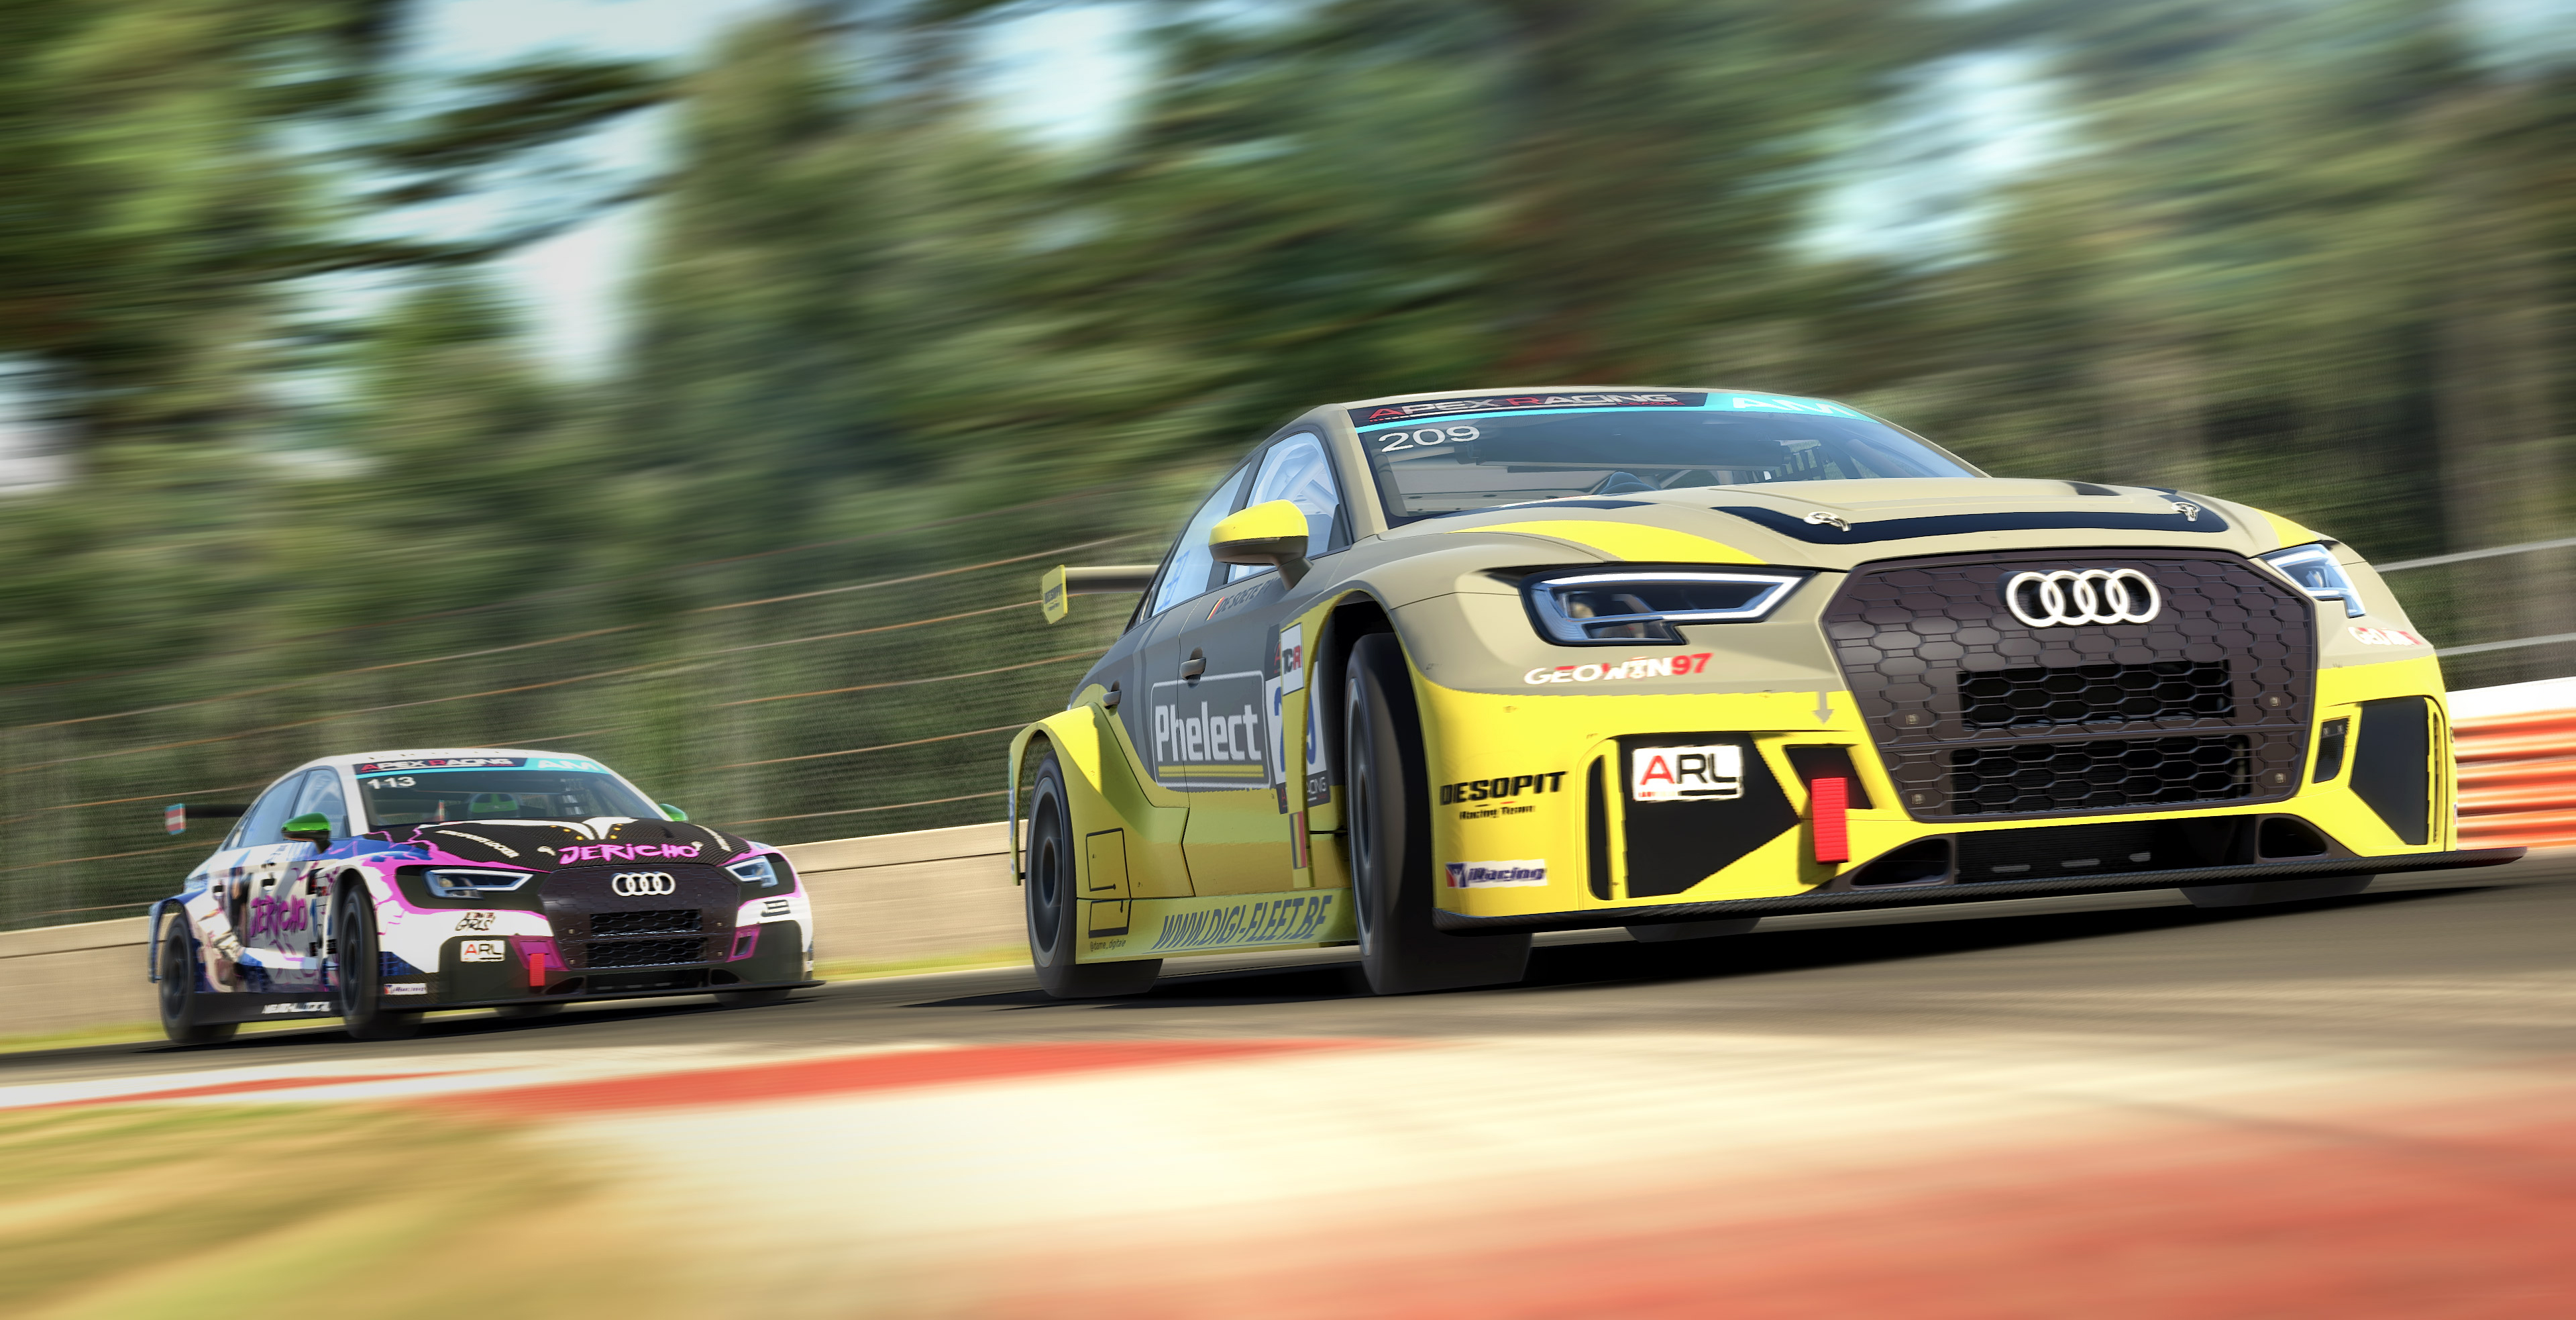 Apex Racing League Touring Car Championship | Round 5 at Zolder